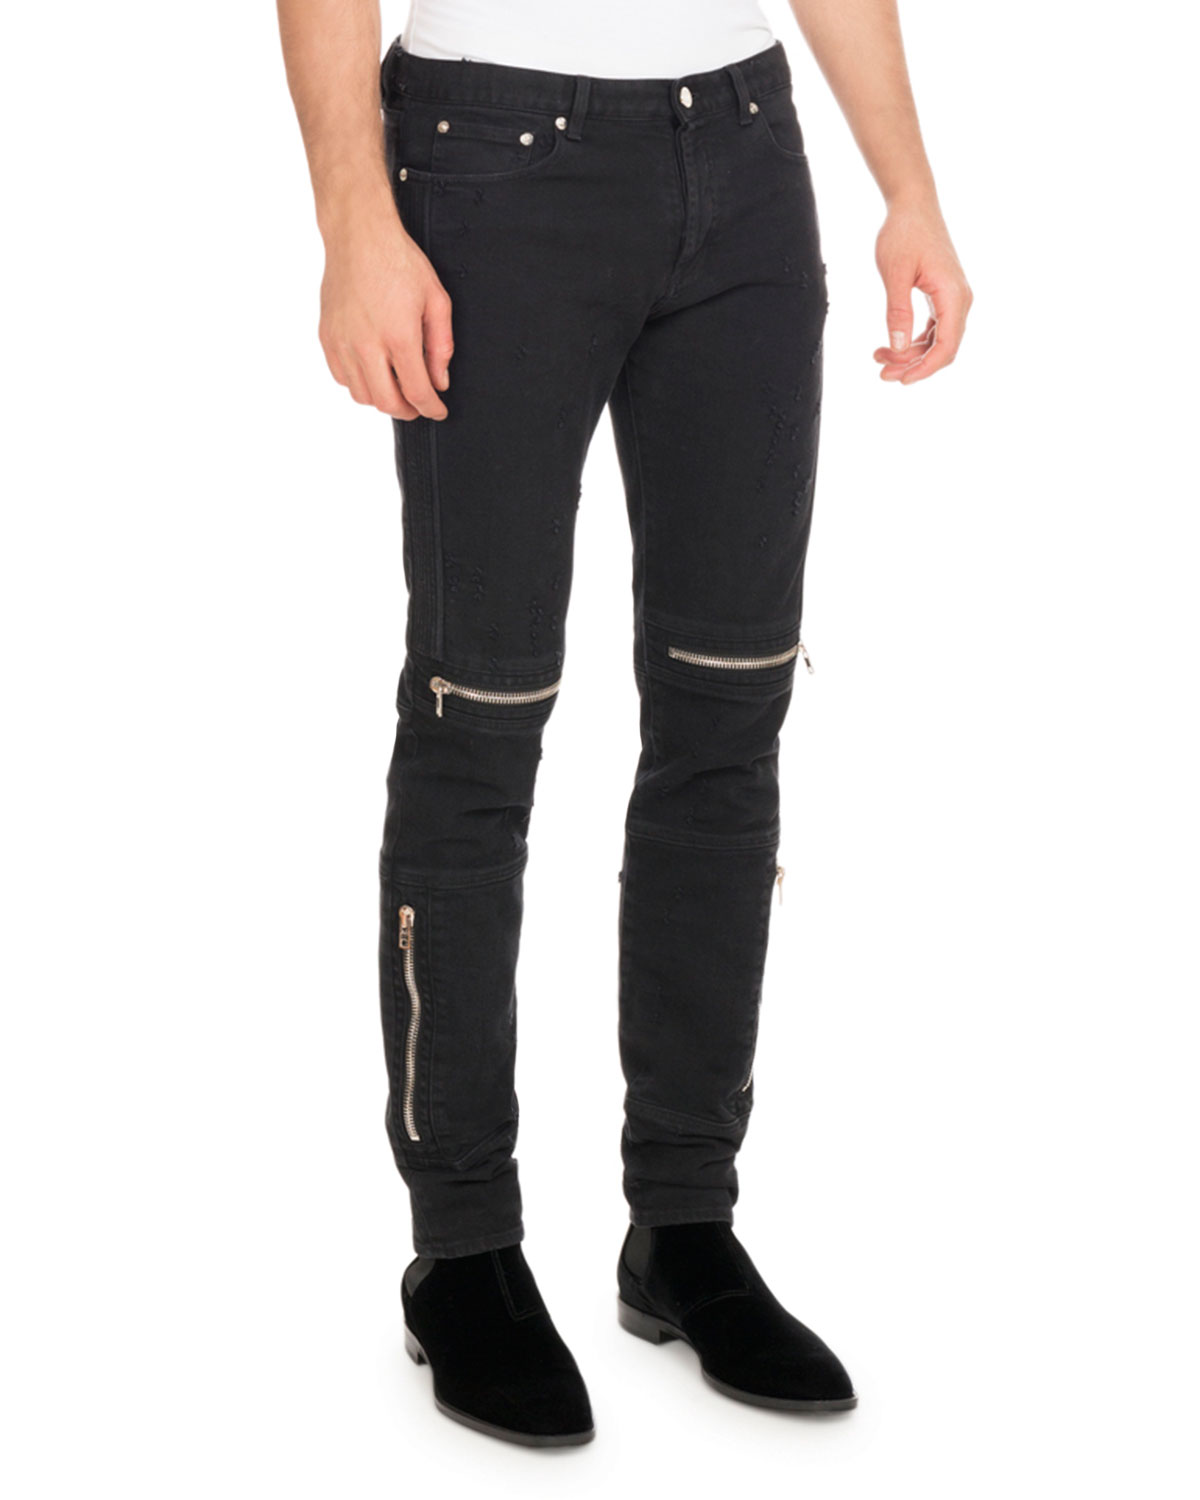 0675c0d54b3 Givenchy Distressed Denim Biker Skinny Jeans, Black | Neiman Marcus